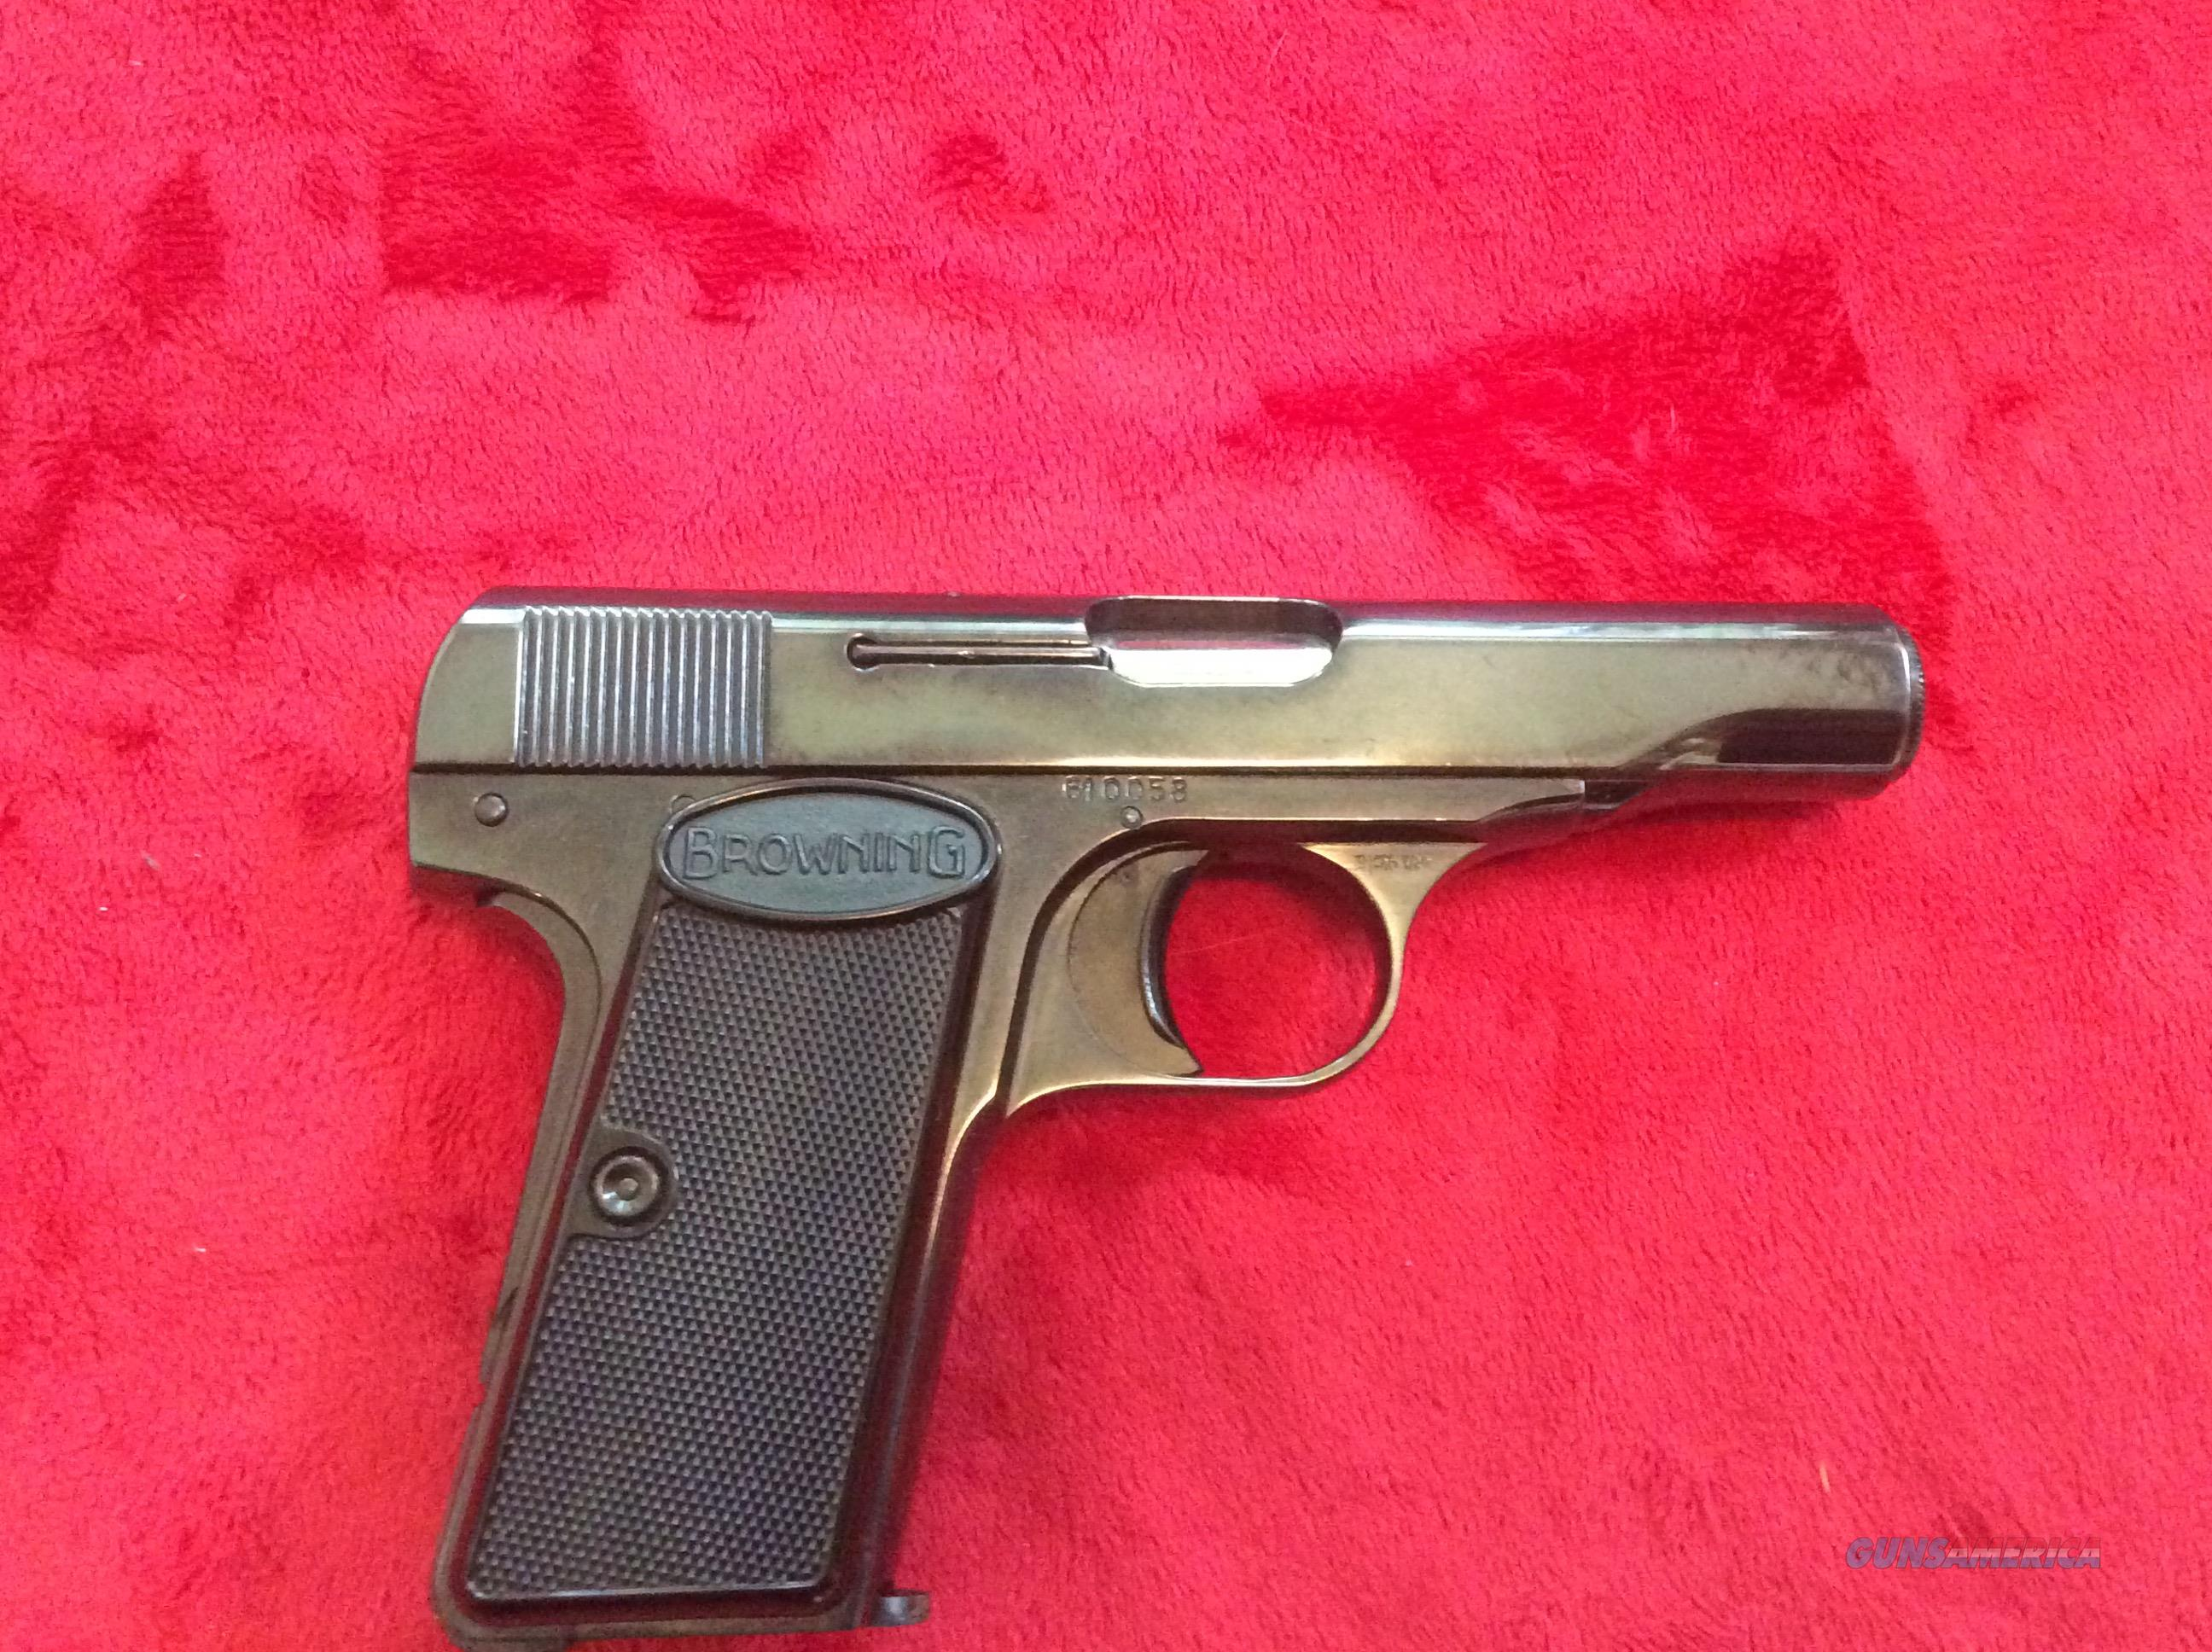 Browning model 1910-1955 380 semi auto  Guns > Pistols > Browning Pistols > Other Autos